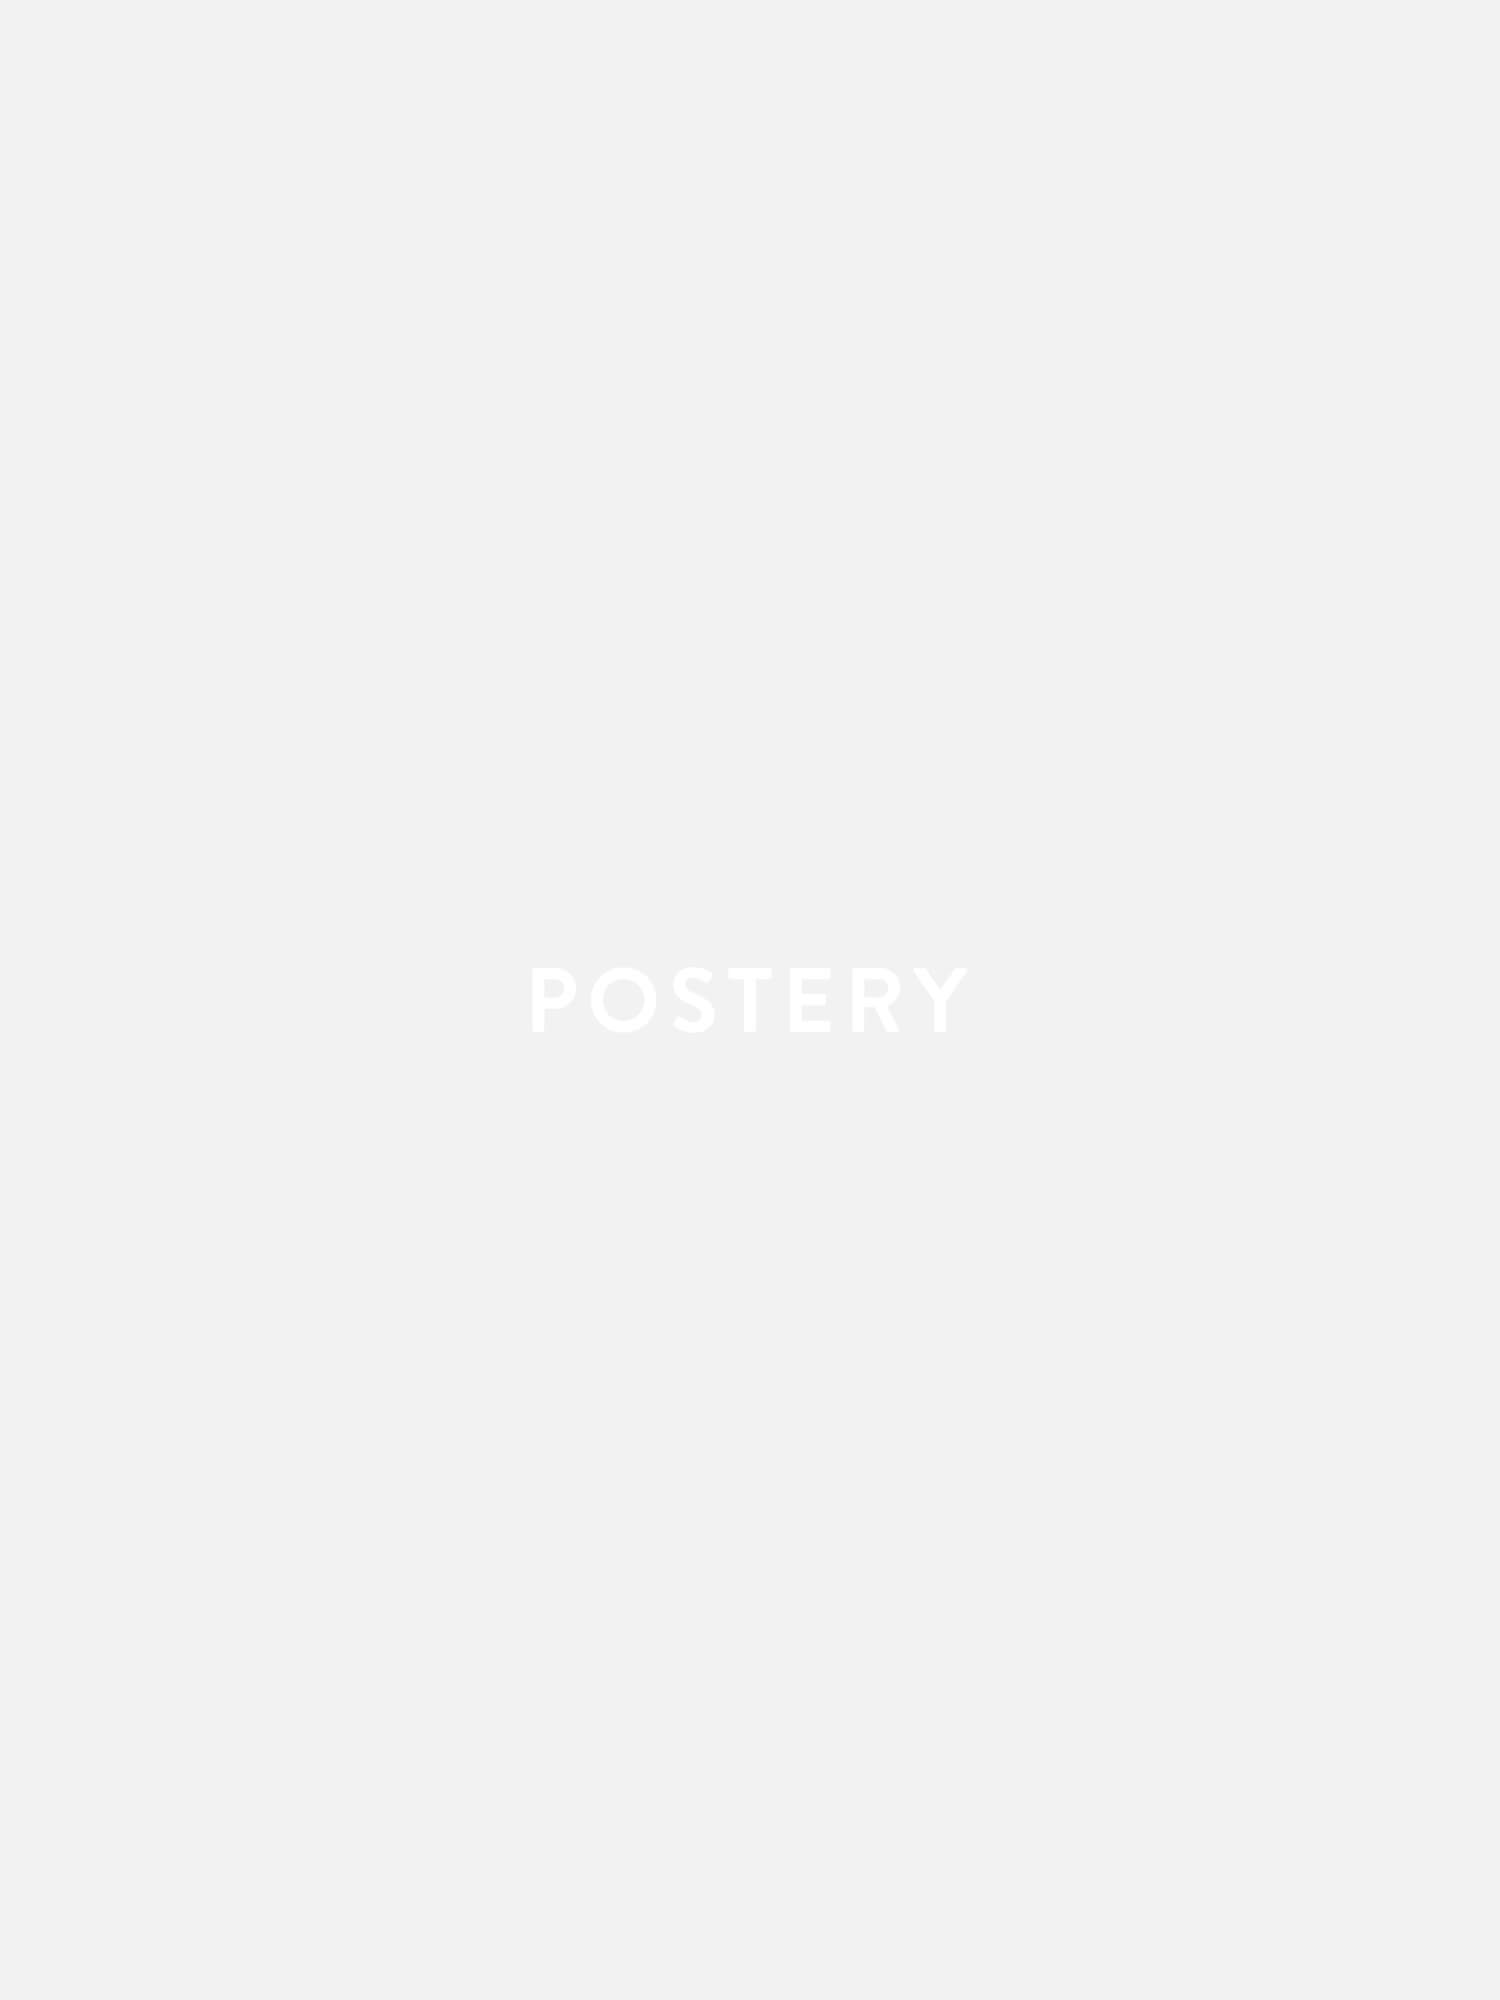 Water Lily Pond by Monet Poster